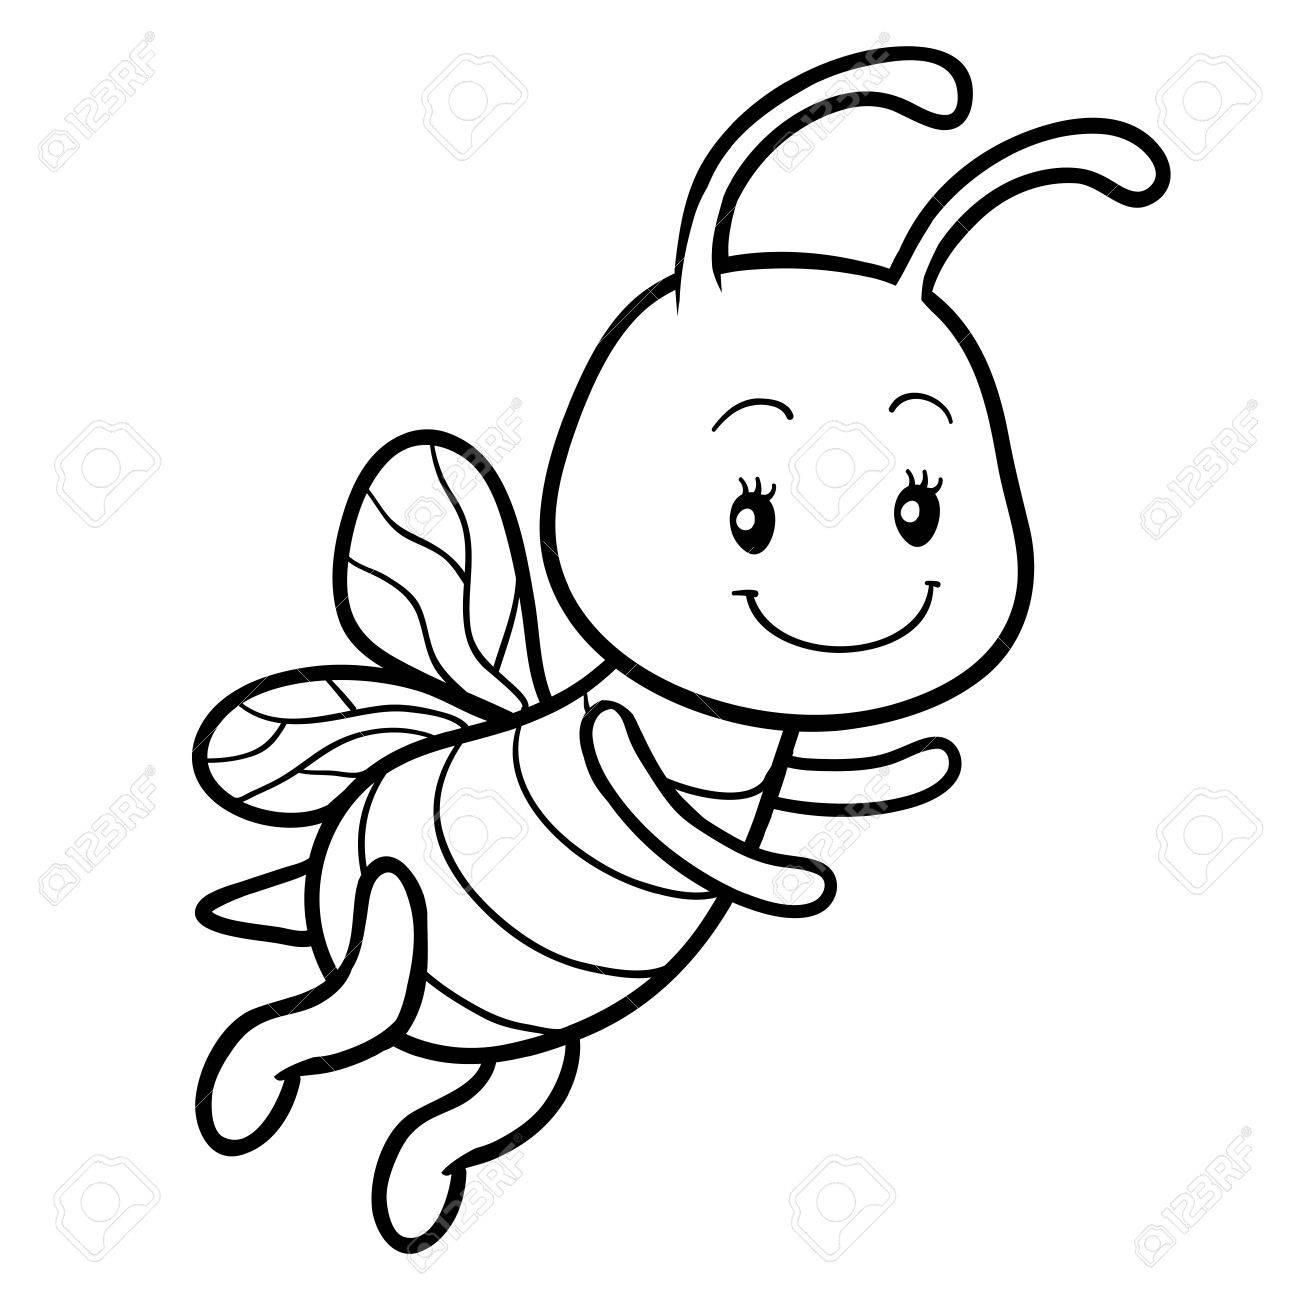 - Coloring Book For Children, Coloring Page With A Small Bee Royalty